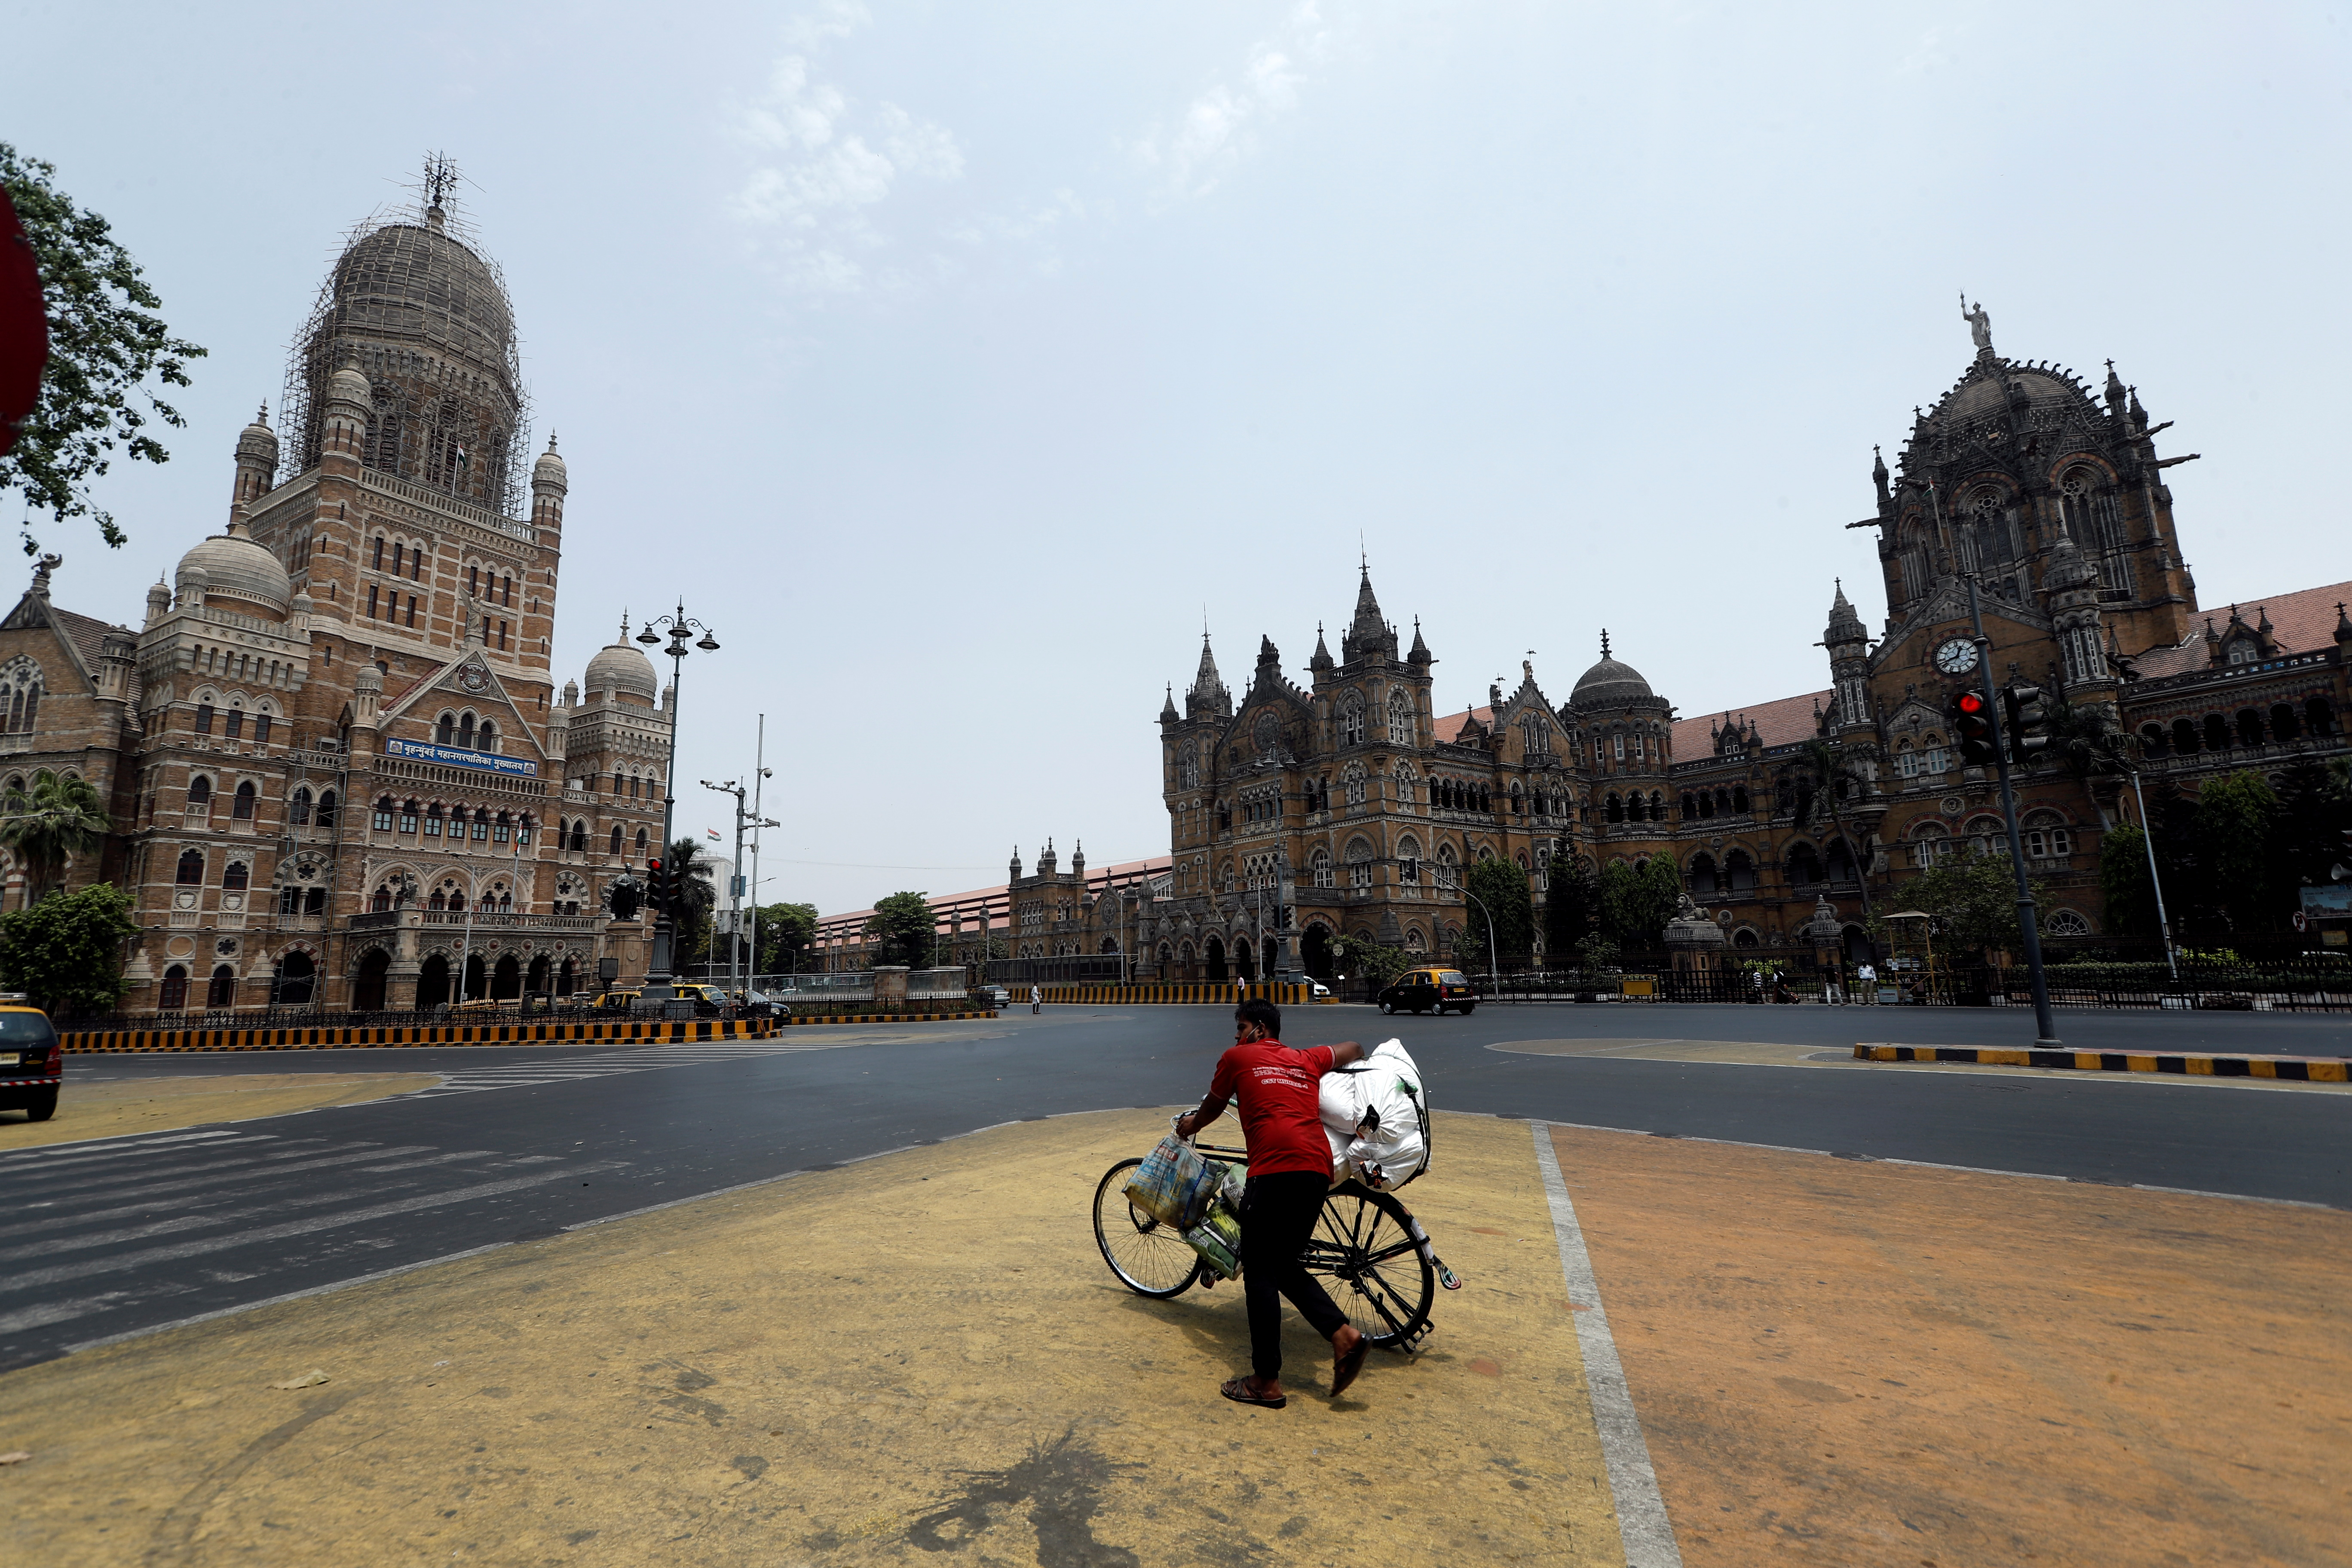 A man walks with his bicycle in front of the Brihanmumbai Municipal Corporation (BMC) building and the Chhatrapati Shivaji Maharaj Terminus (CSMT) during a weekend lockdown to limit the spread of the coronavirus disease (COVID-19) in Mumbai, India, April 10, 2021. REUTERS/Francis Mascarenhas